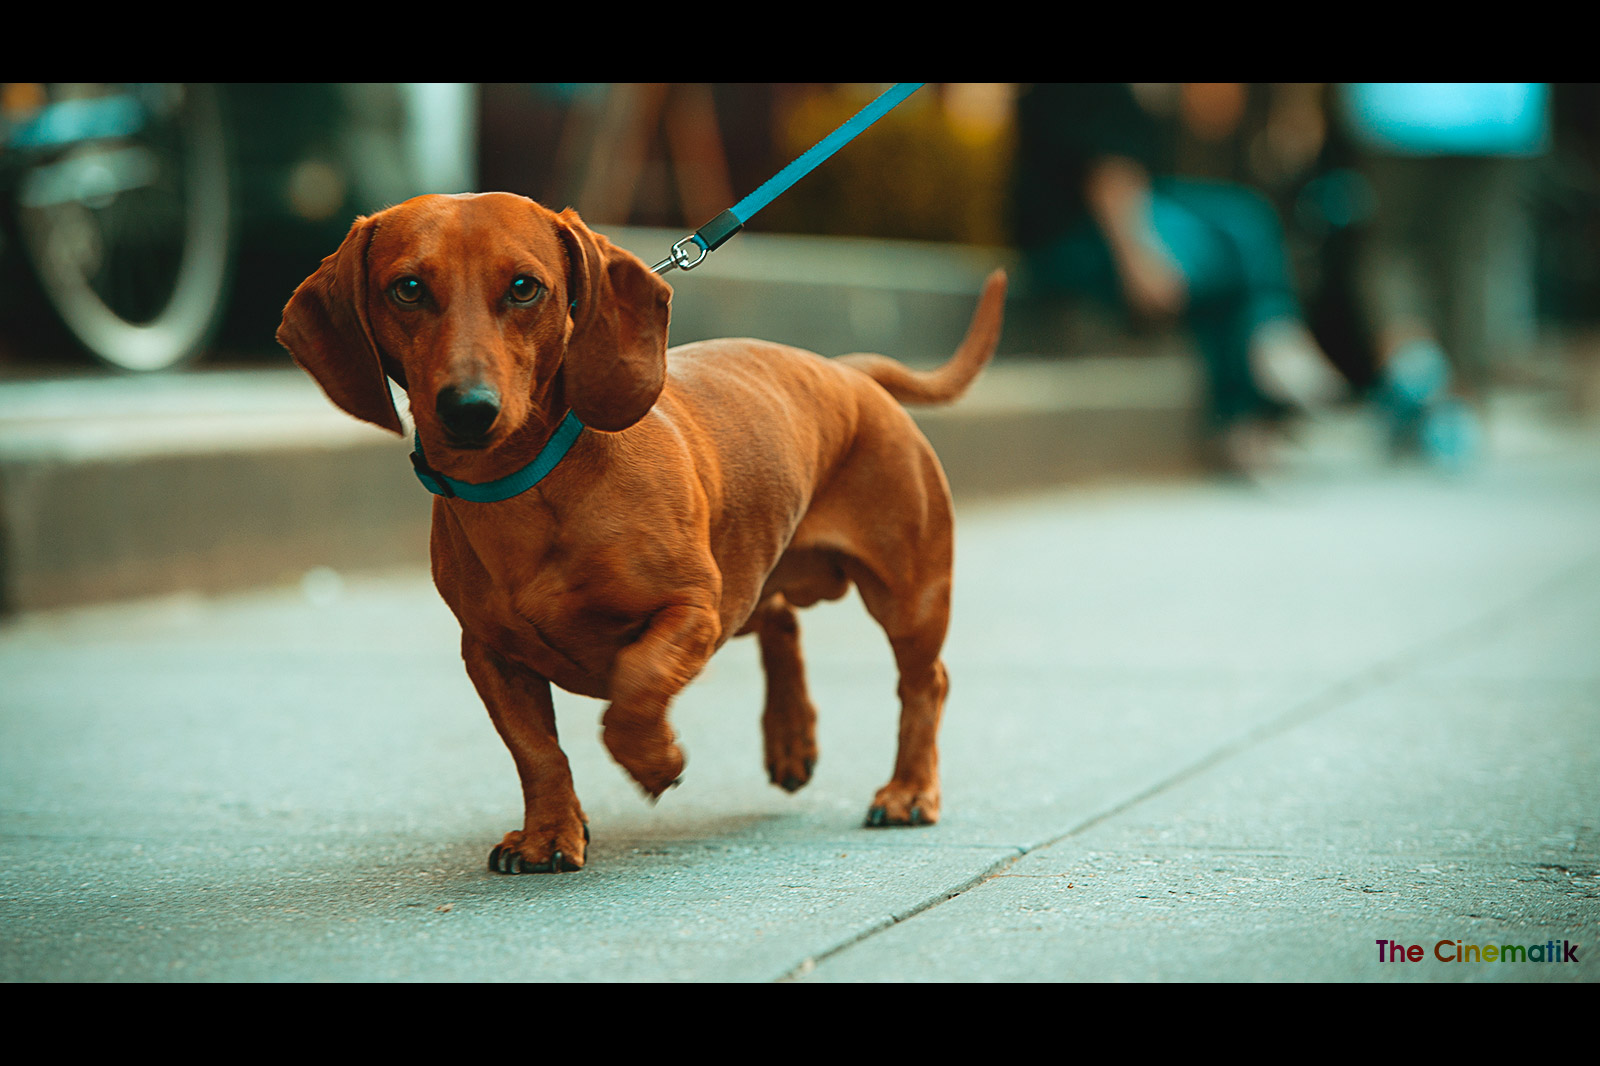 Proud little dog with funny attitude in New York cinematic photograph by Kamal Lahmadi/THE CINEMATIK